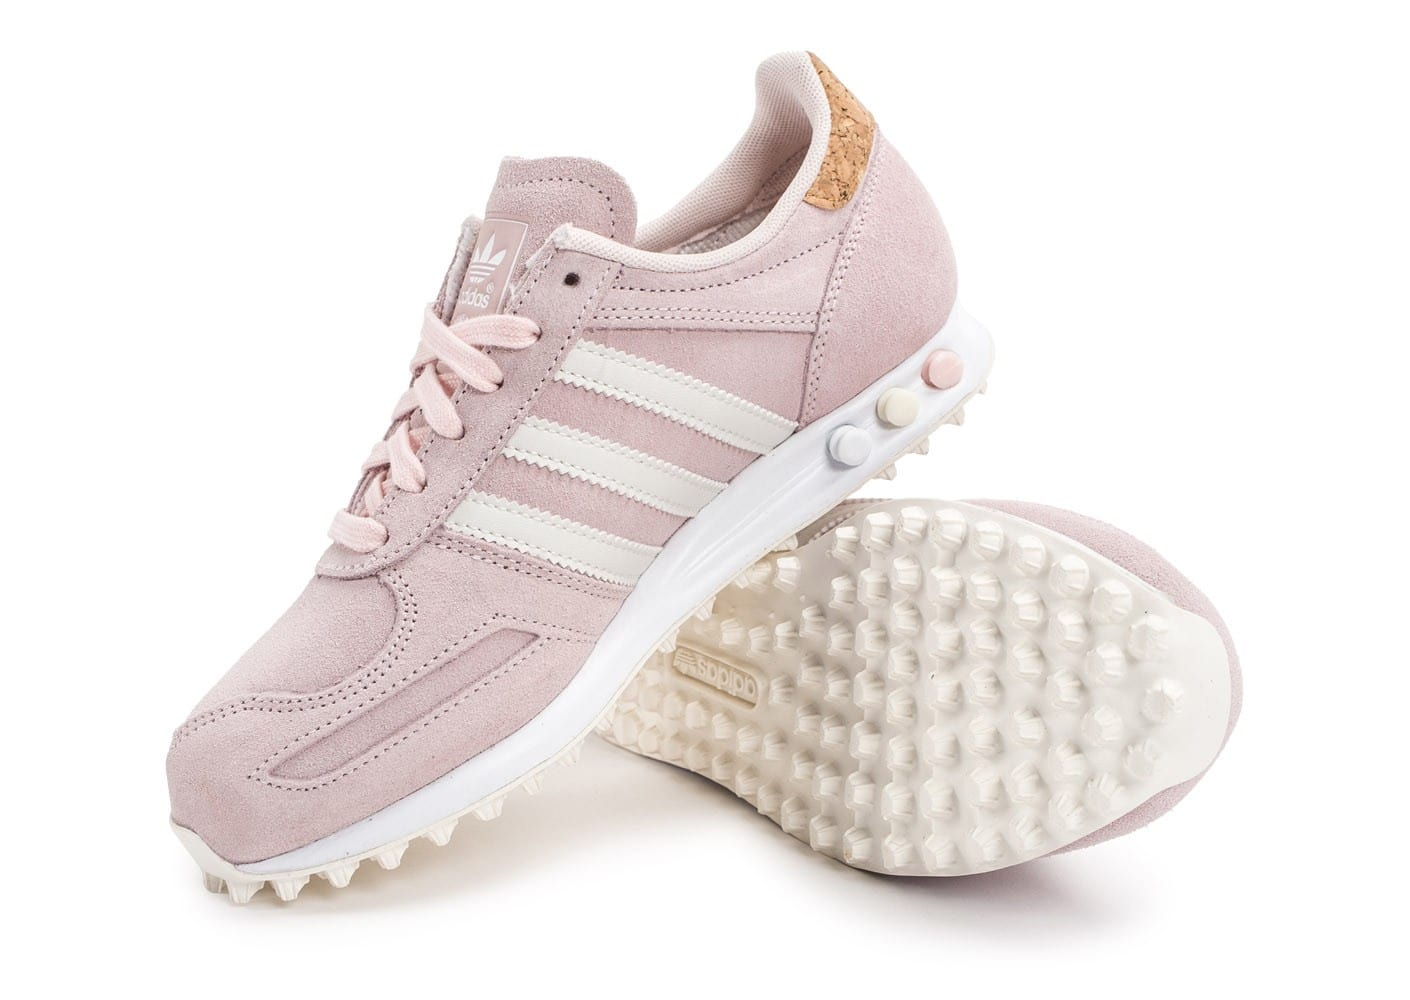 Rose Chaussures L Chausport Trainer Adidas a H29IYeDWE